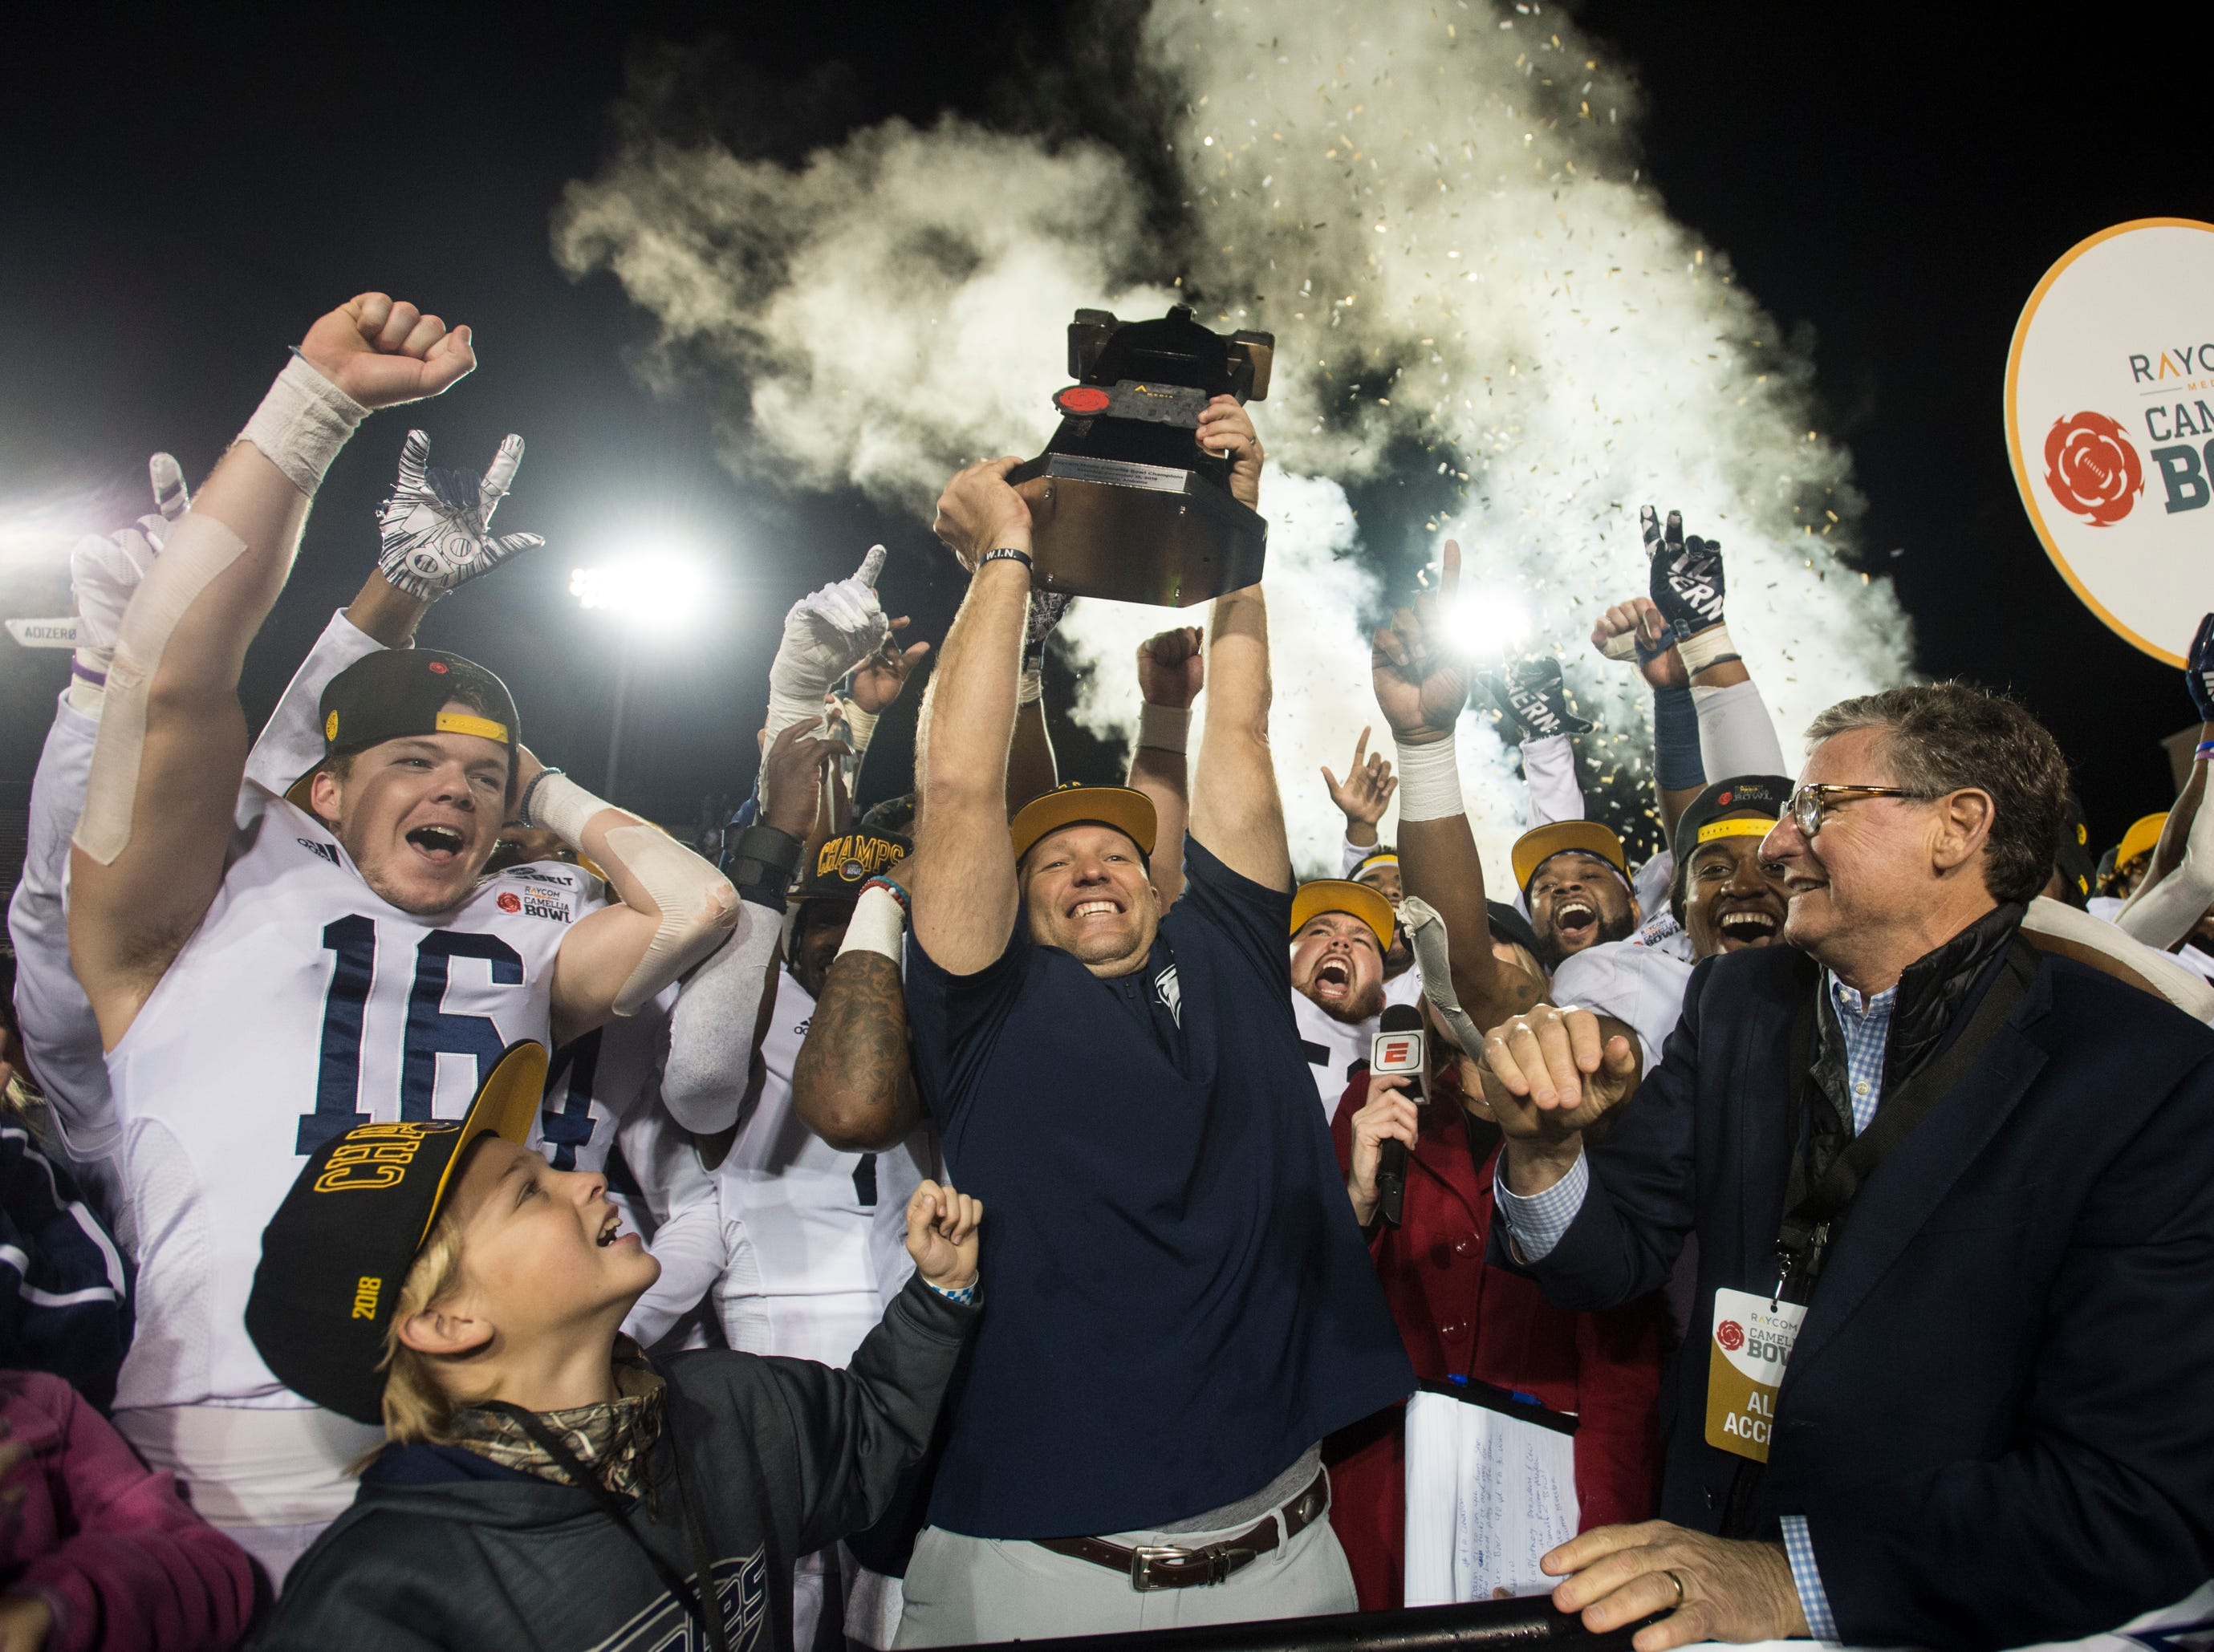 Georgia Southern head coach Chad Lunsford hoists the trophy after winning the Camellia Bowl at Cramton Bowl in Montgomery, Ala., on Saturday, Dec. 15, 2018. Georgia Southern defeated Eastern Michigan 23-21.